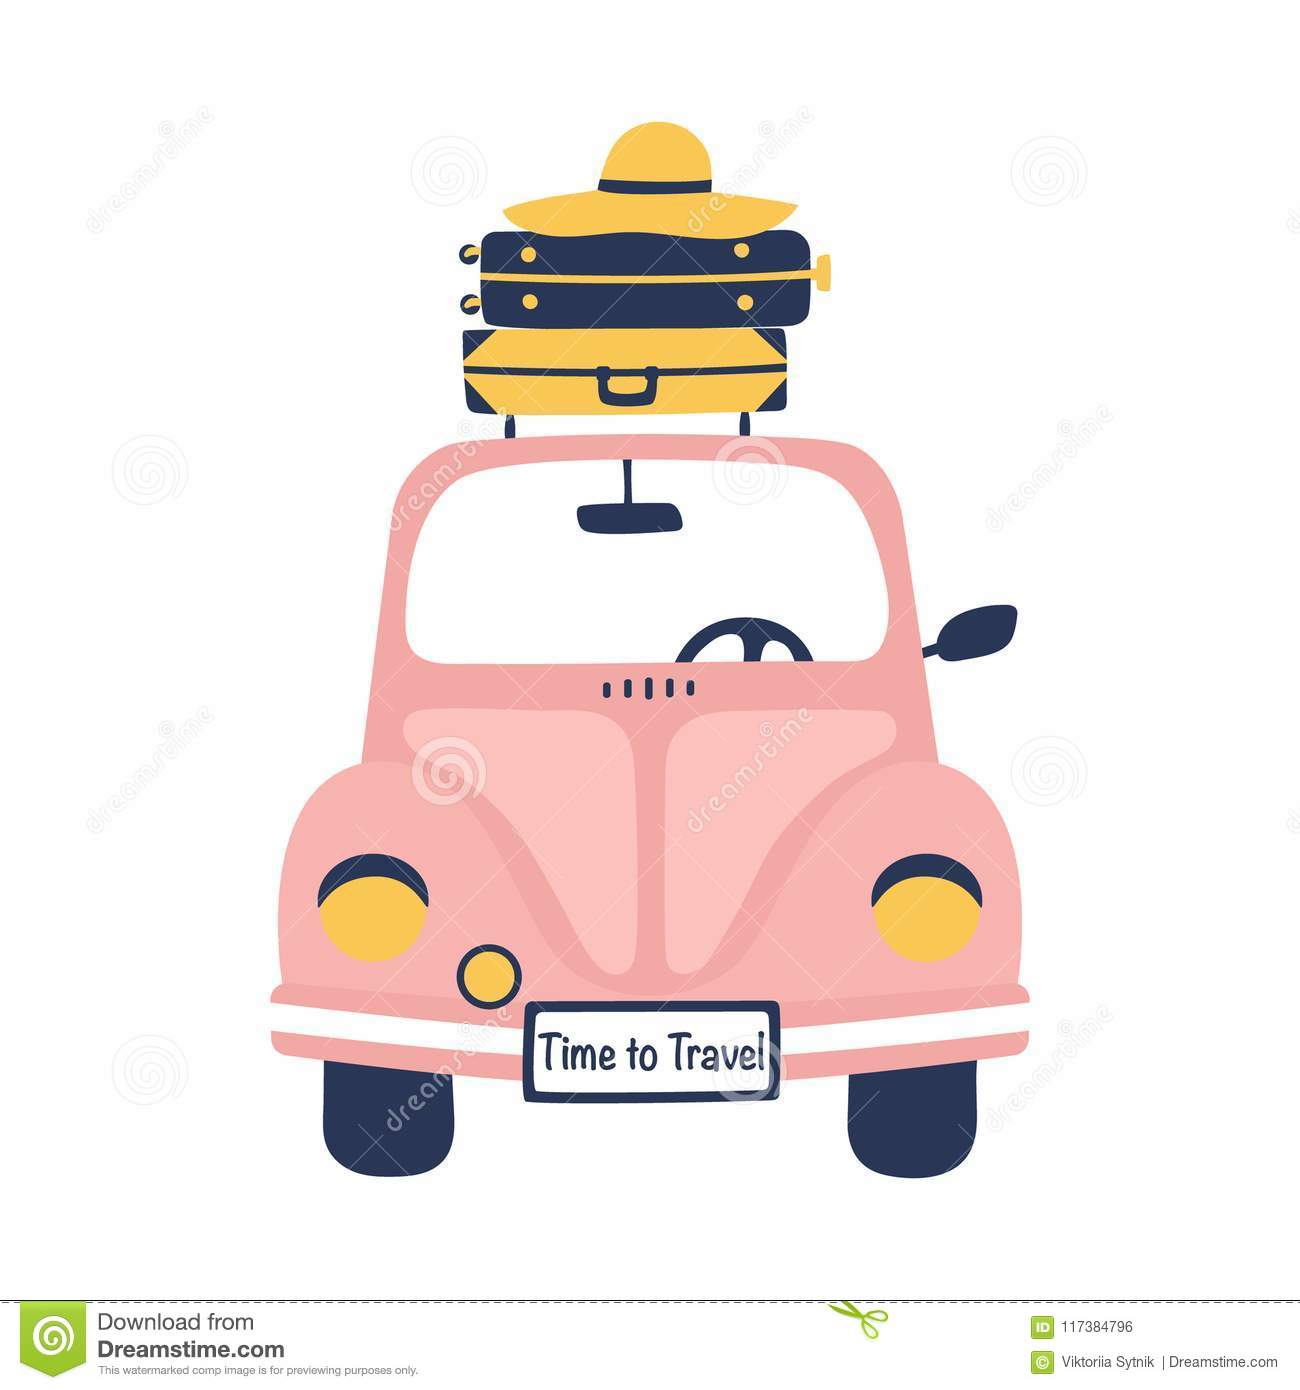 Summer travel illustration with cute retro car and suitcases.